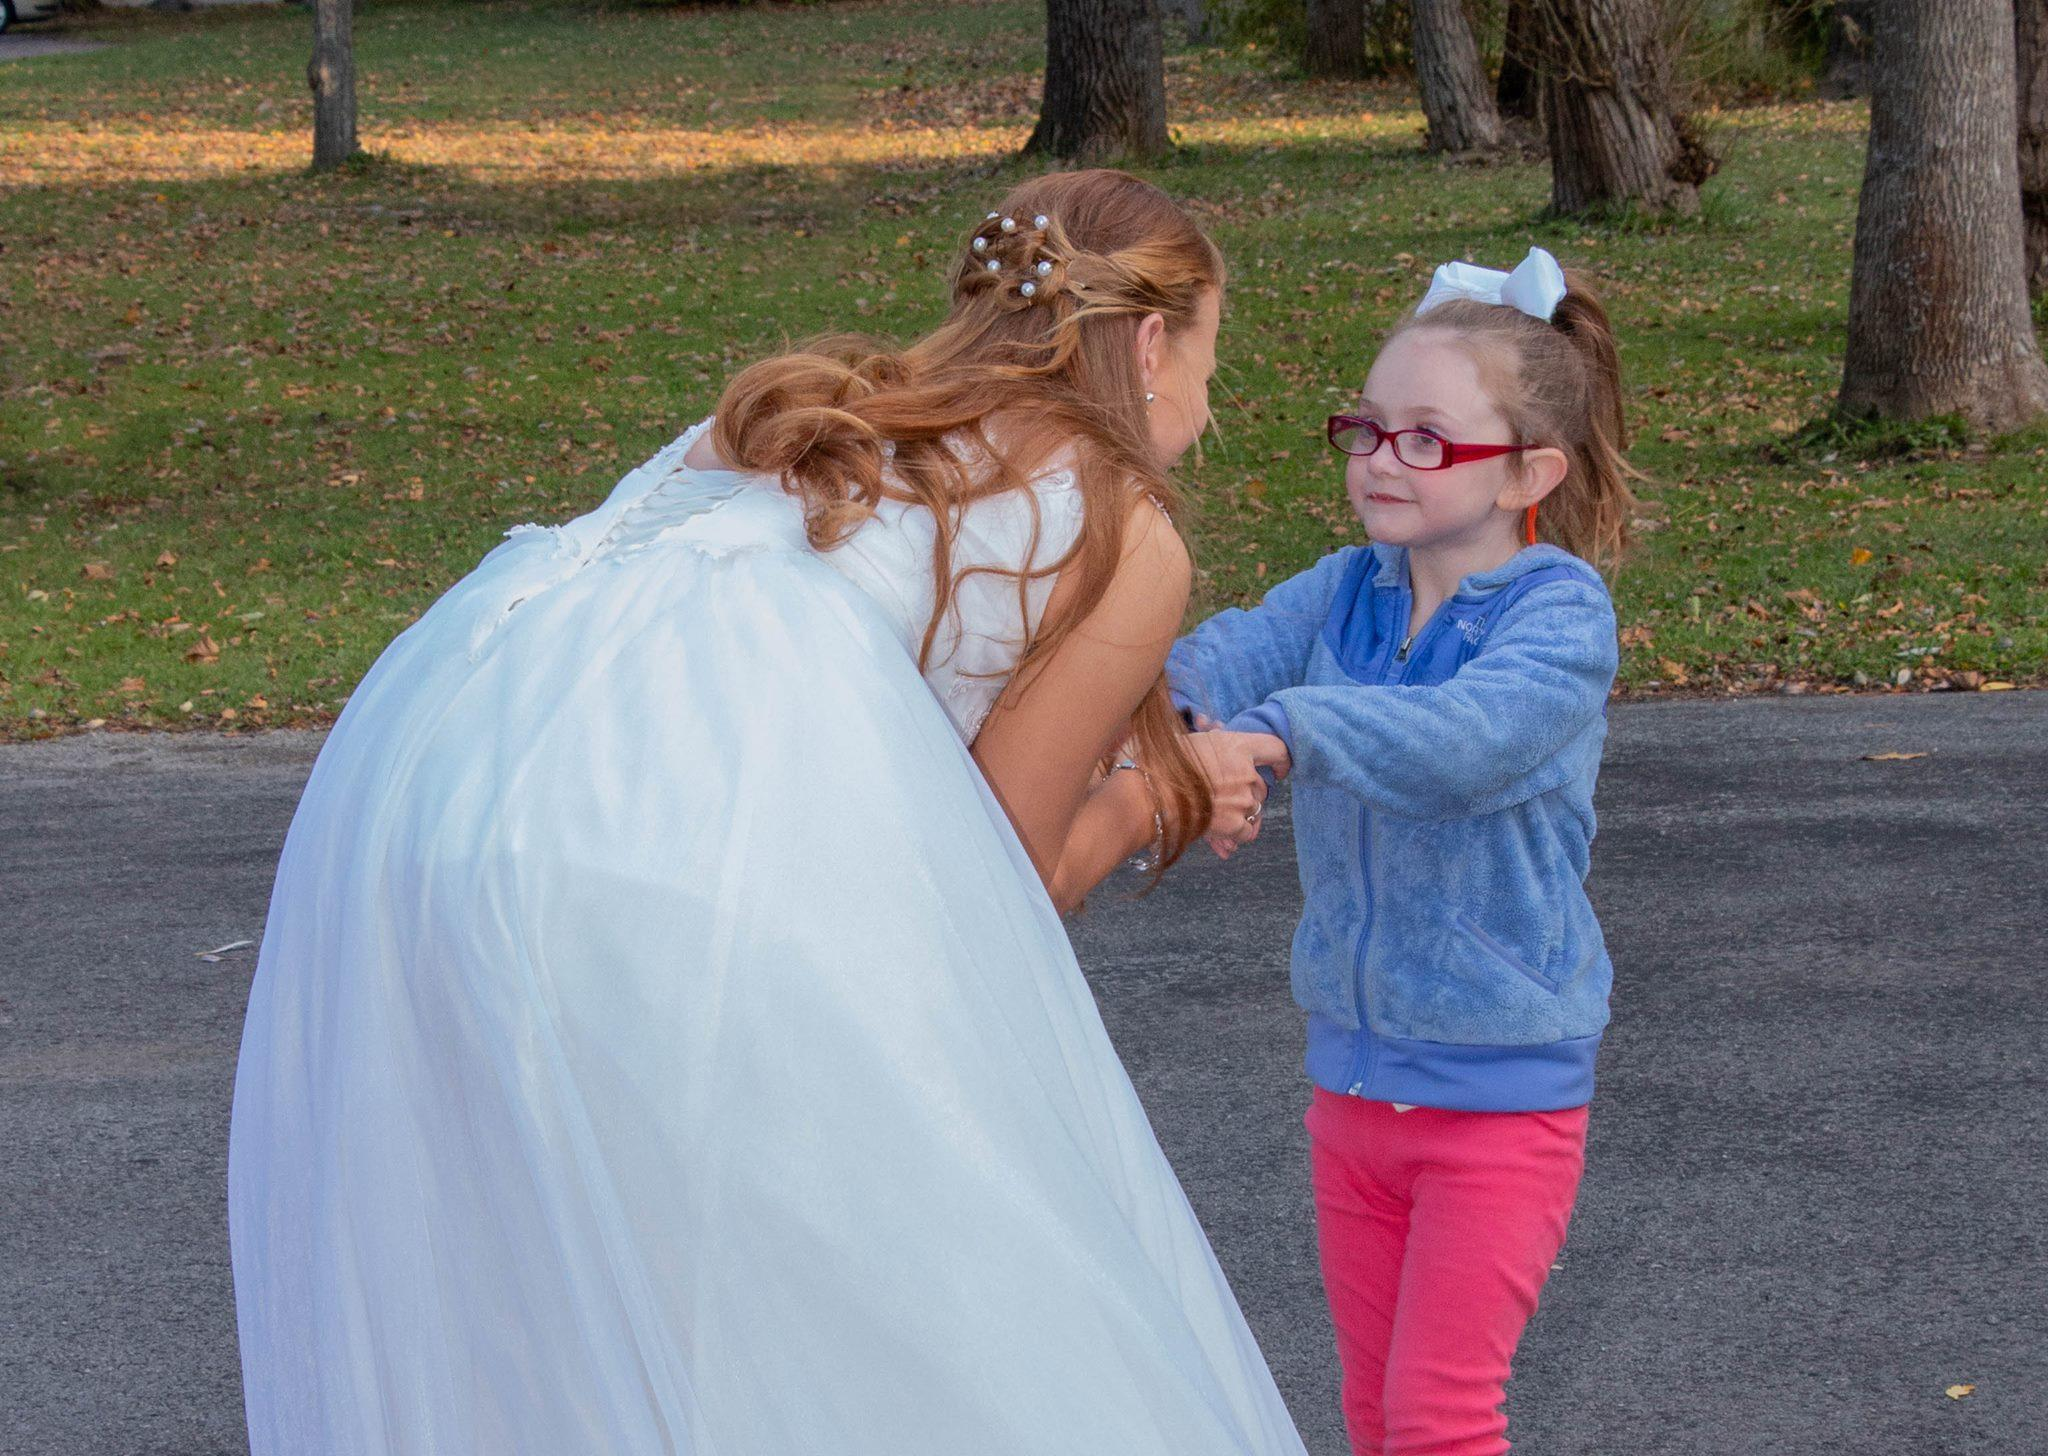 08010eb2995 5-year-old autistic girl mistakes bride taking wedding photos for ...